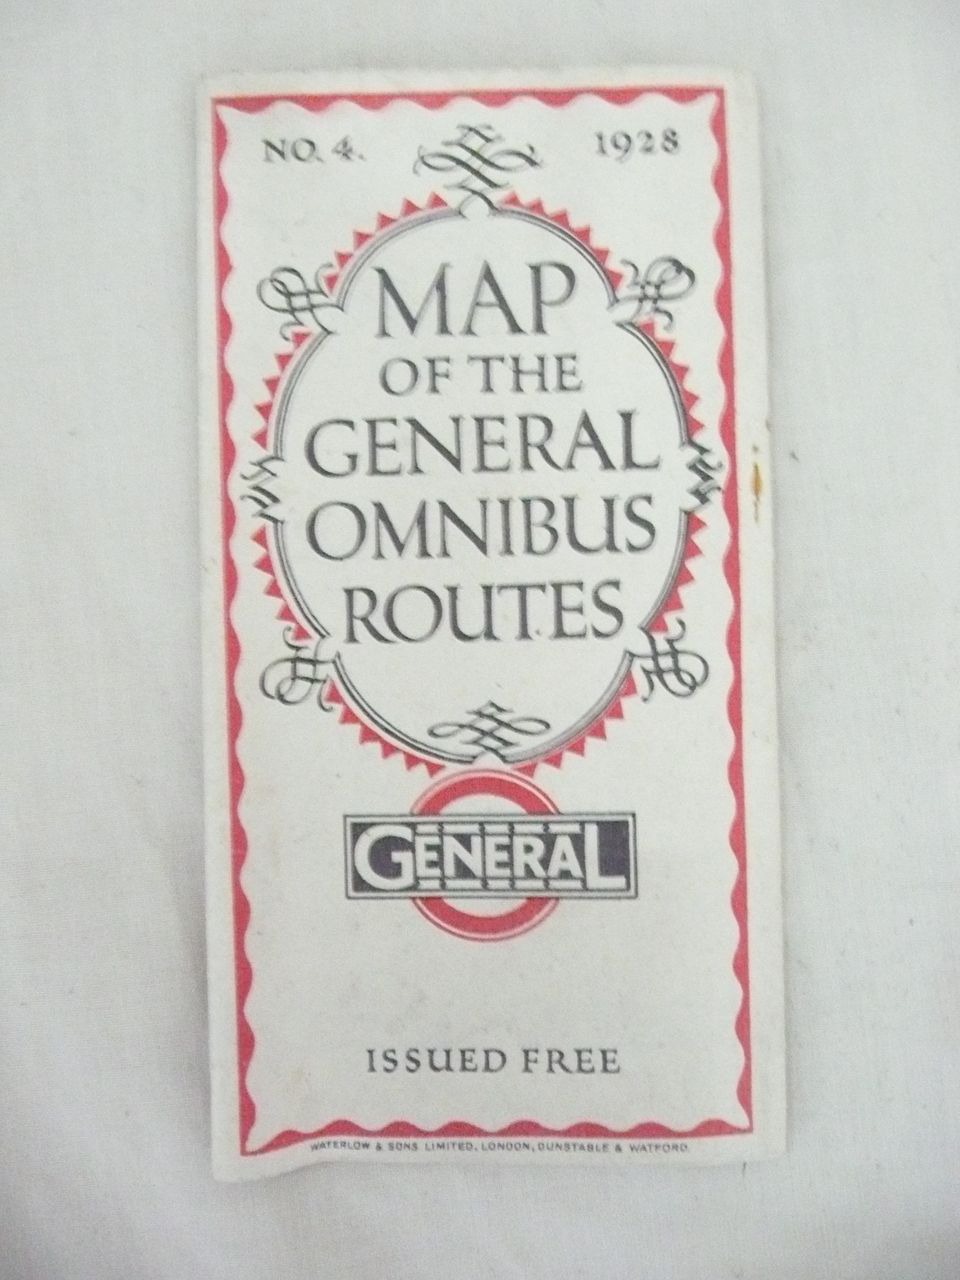 1928 London General Omnibus Company No.4 Route Map